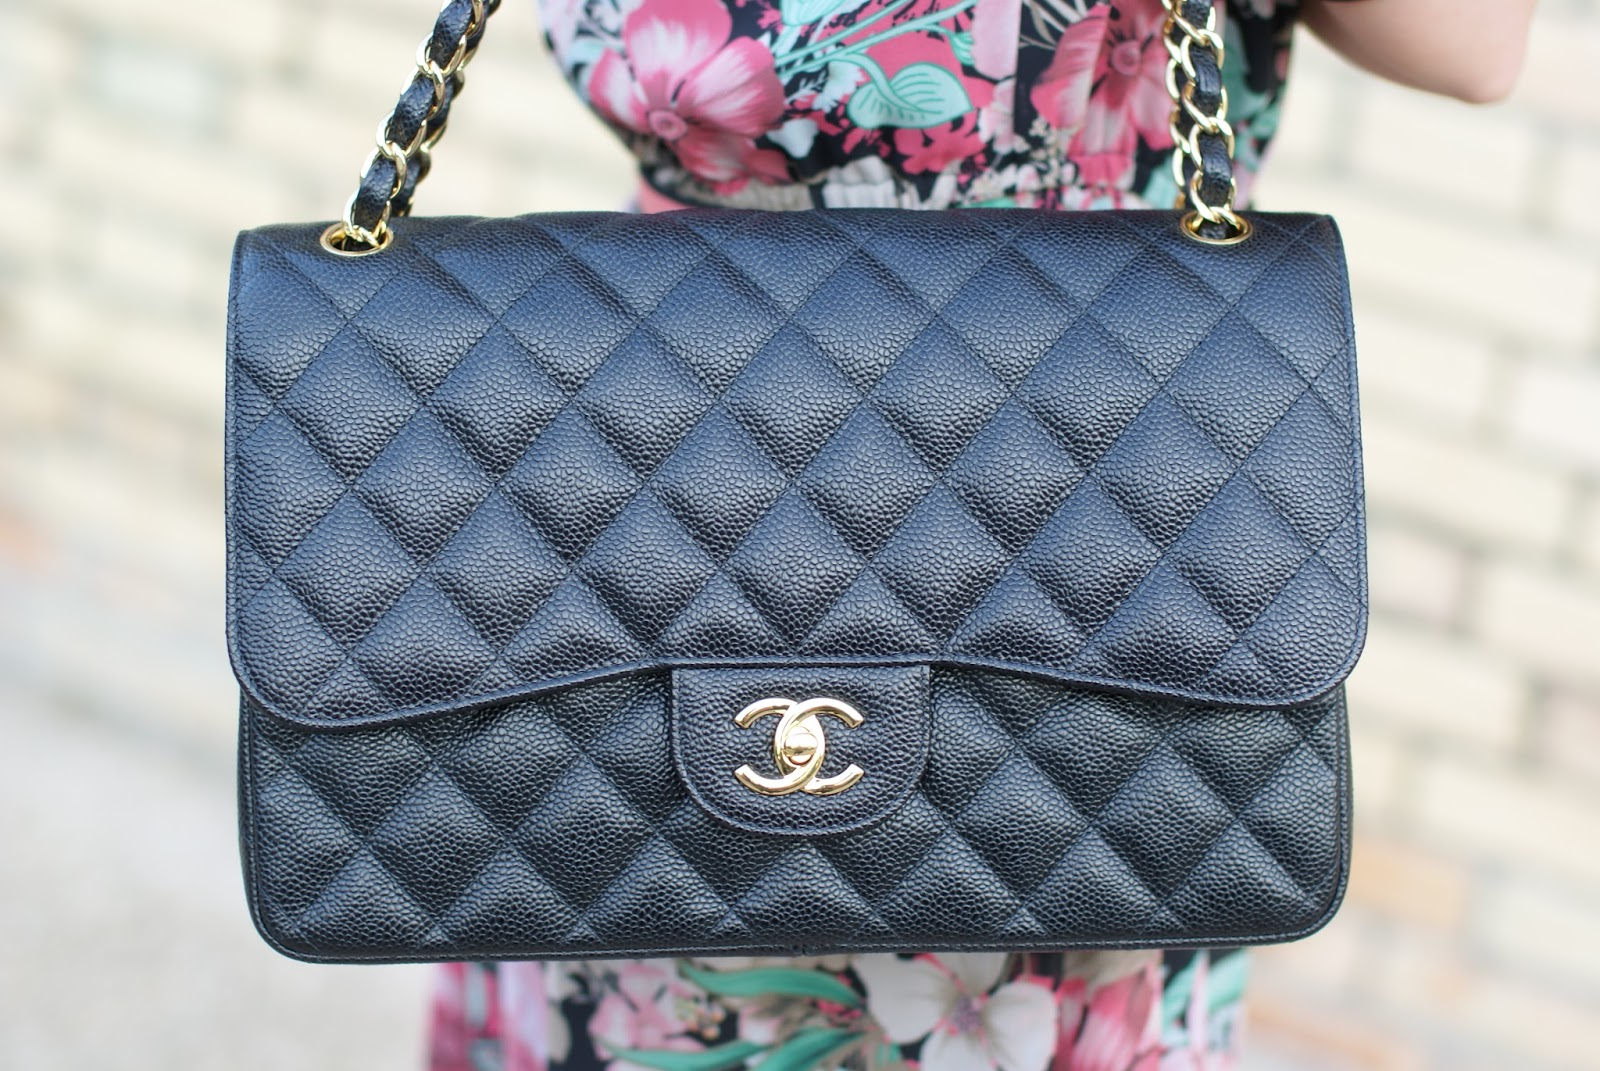 Chanel 2.55 black caviar bag on Fashion and Cookies fashion blog, fashion blogger style